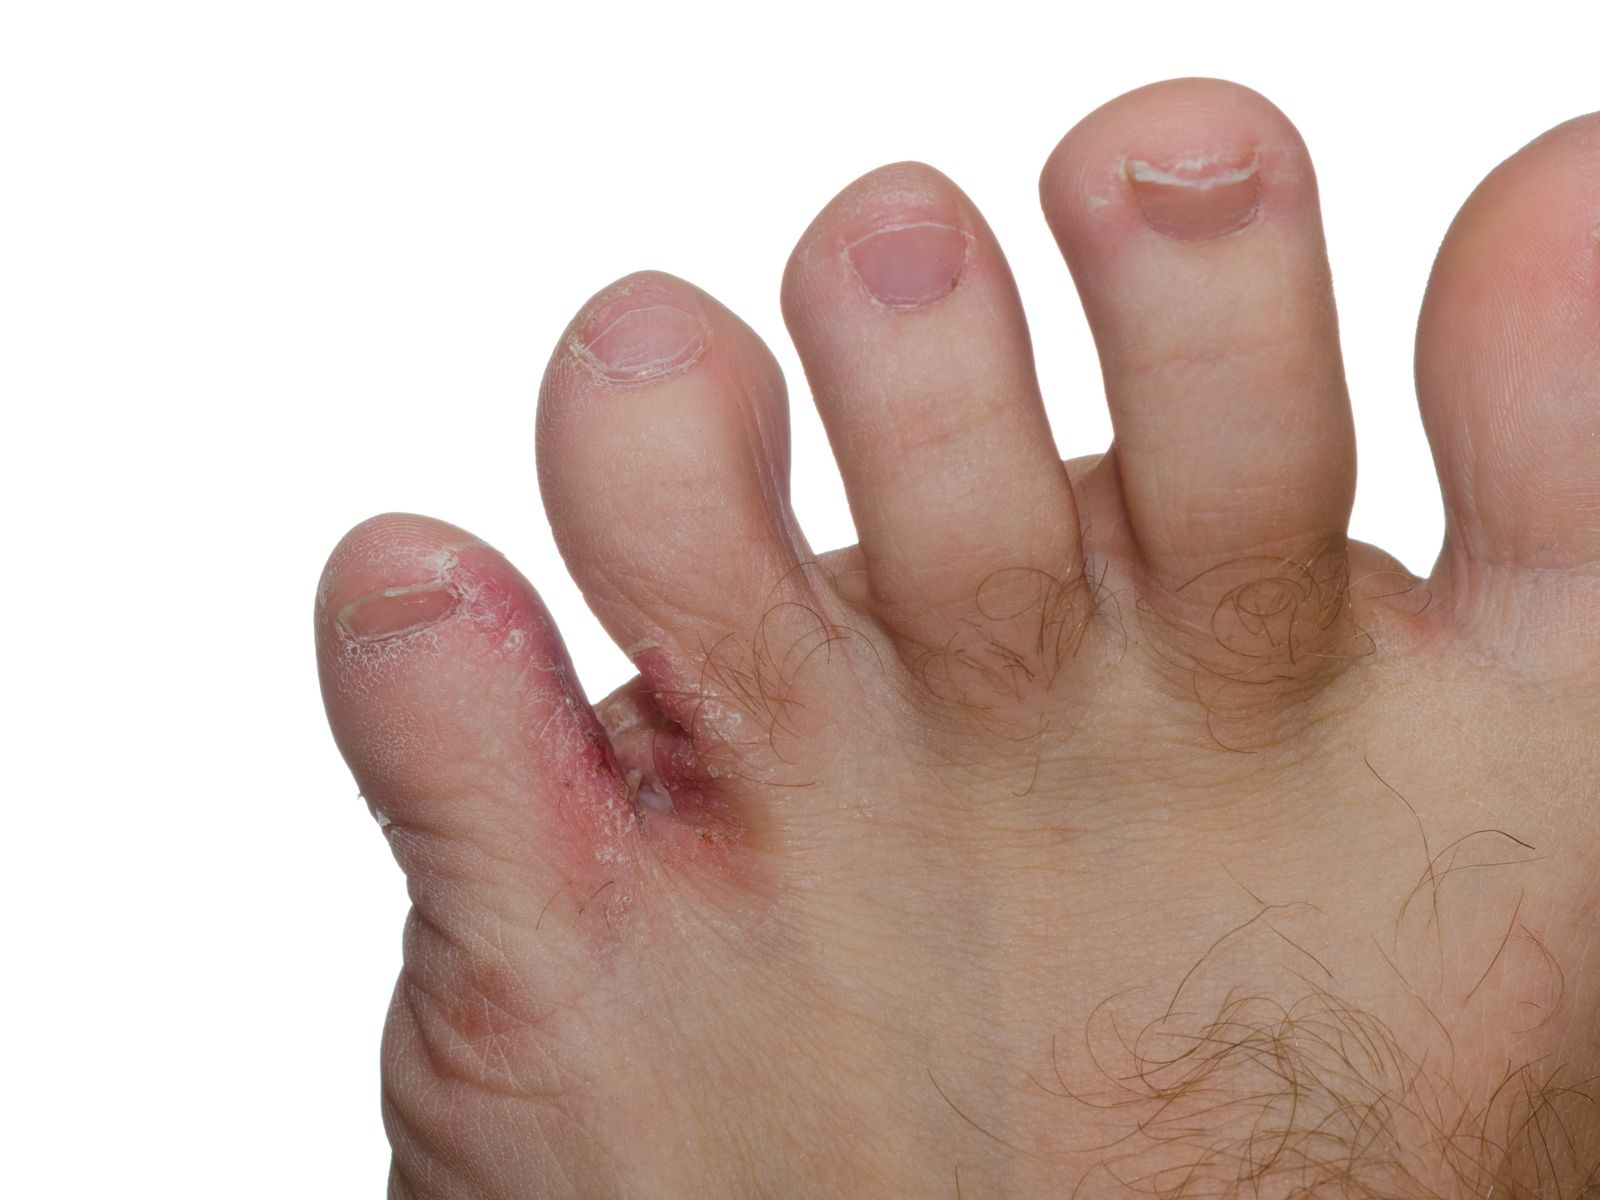 close up of 4 toes with athlete's foot infection between last two toes